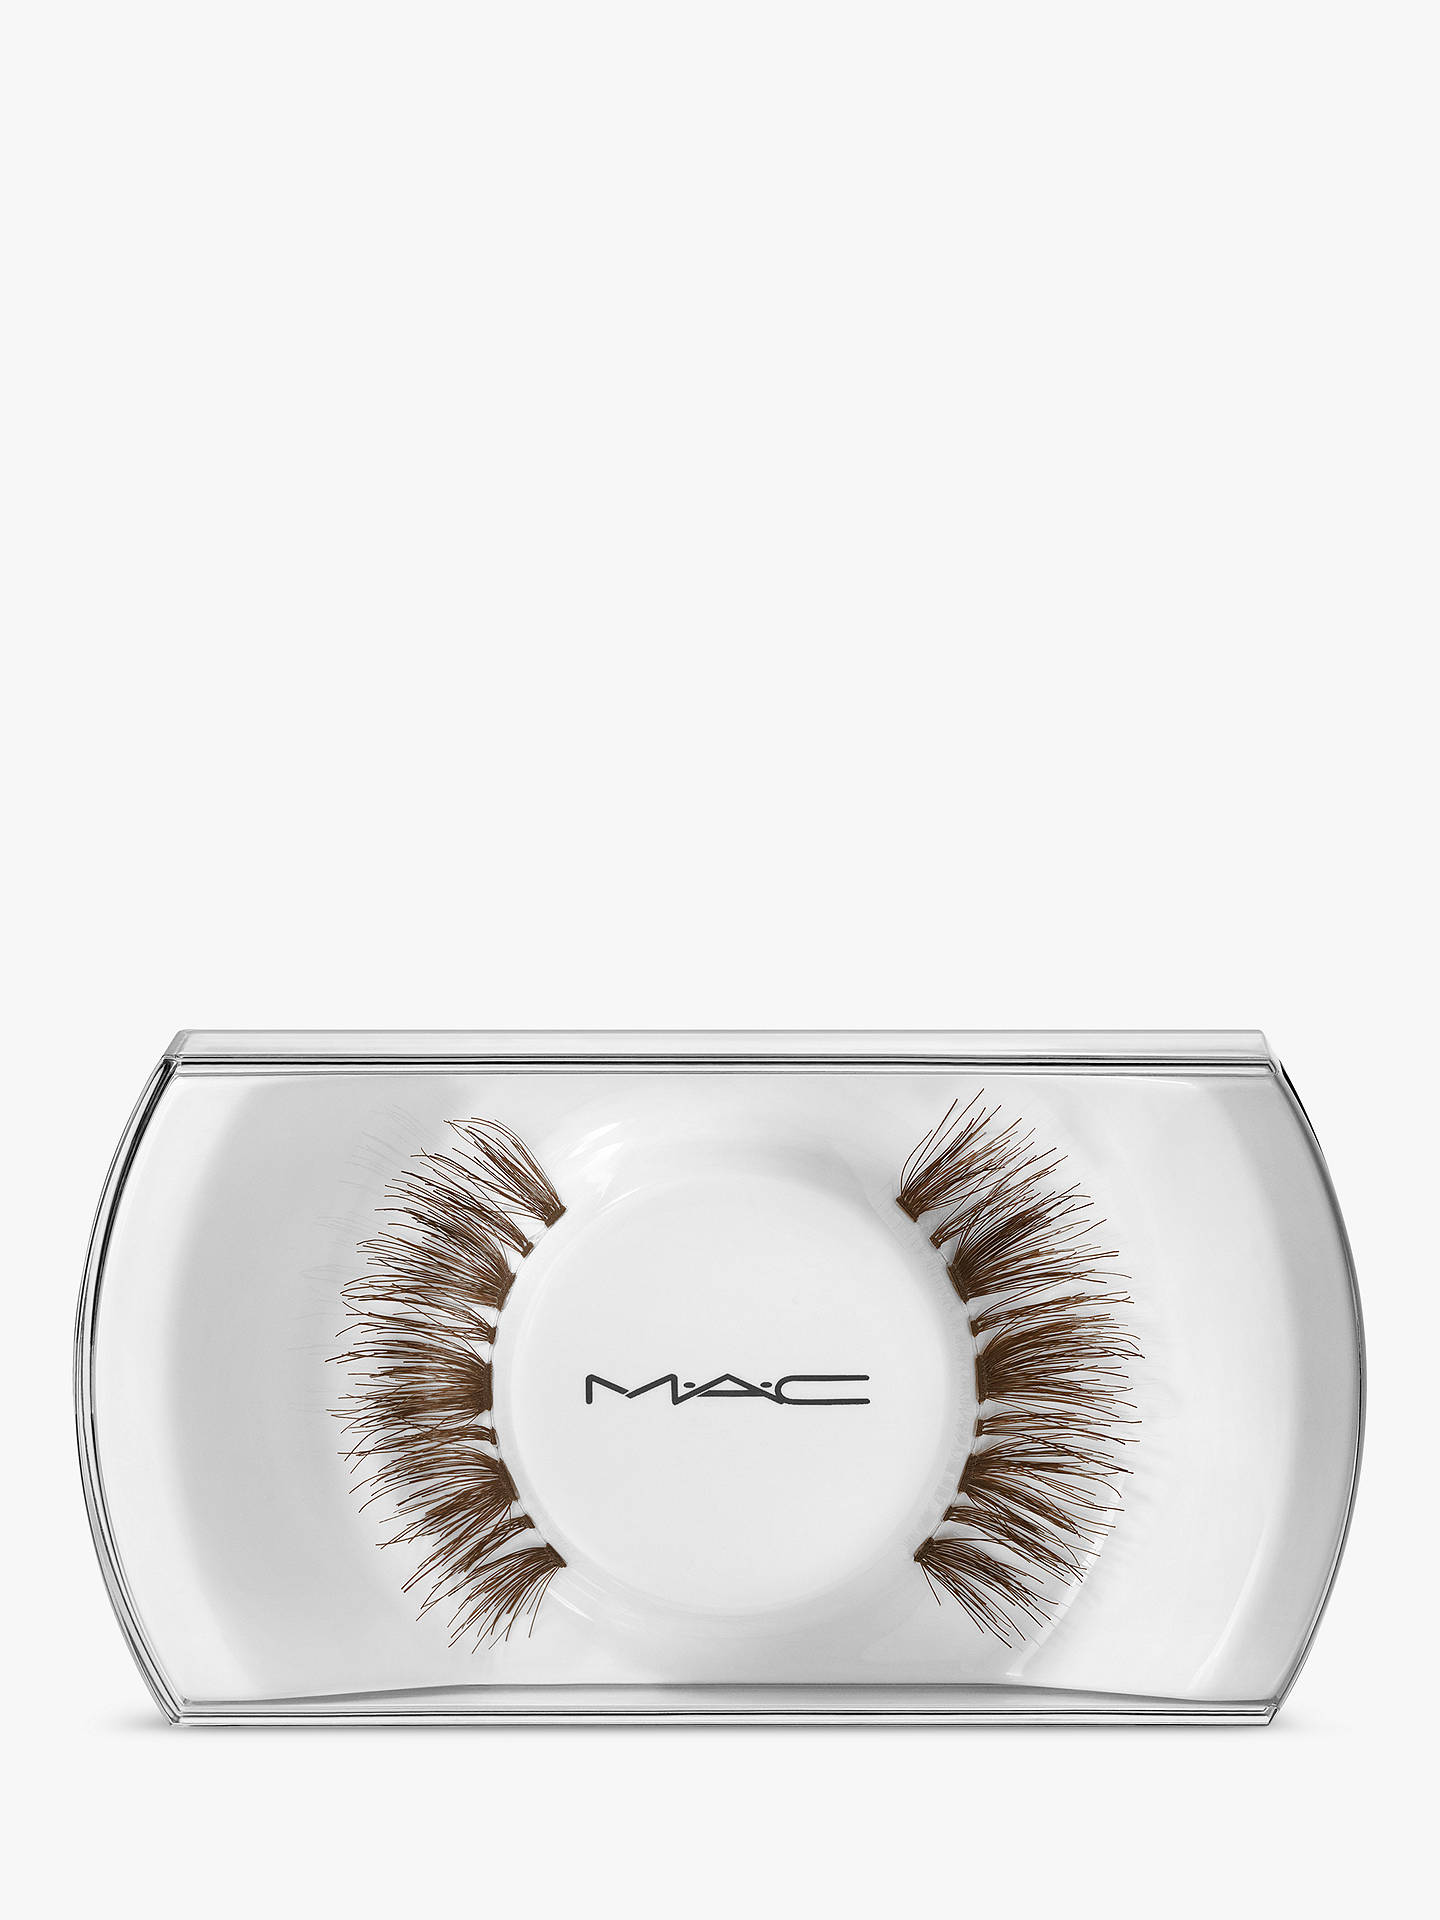 BuyMAC 48 Lash Online at johnlewis.com